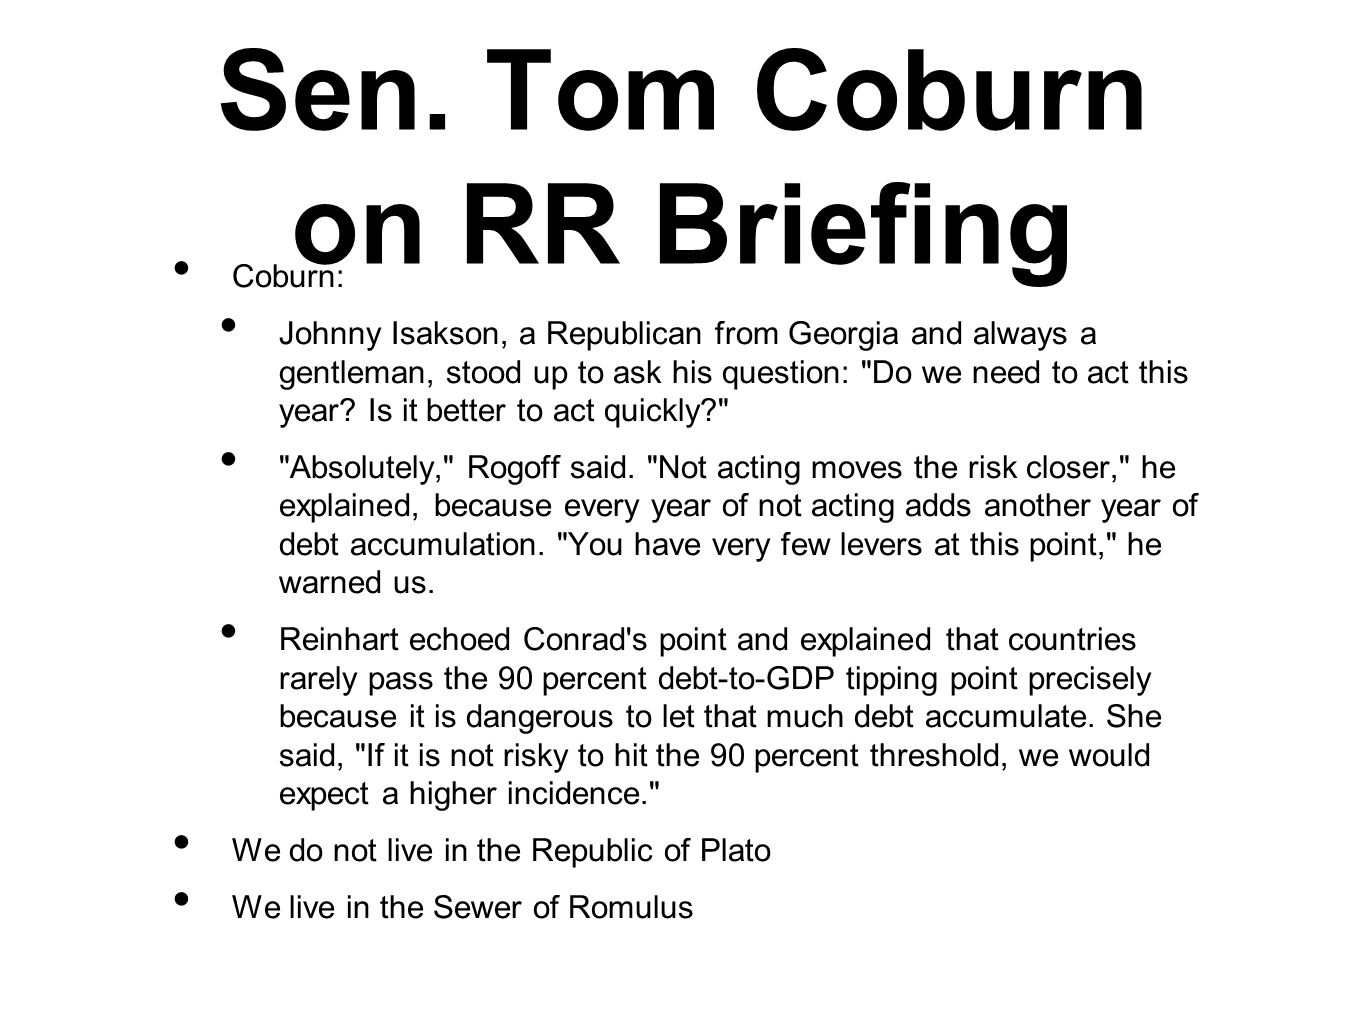 Sen. Tom Coburn on RR Briefing Coburn: Johnny Isakson, a Republican from Georgia and always a gentleman, stood up to ask his question: